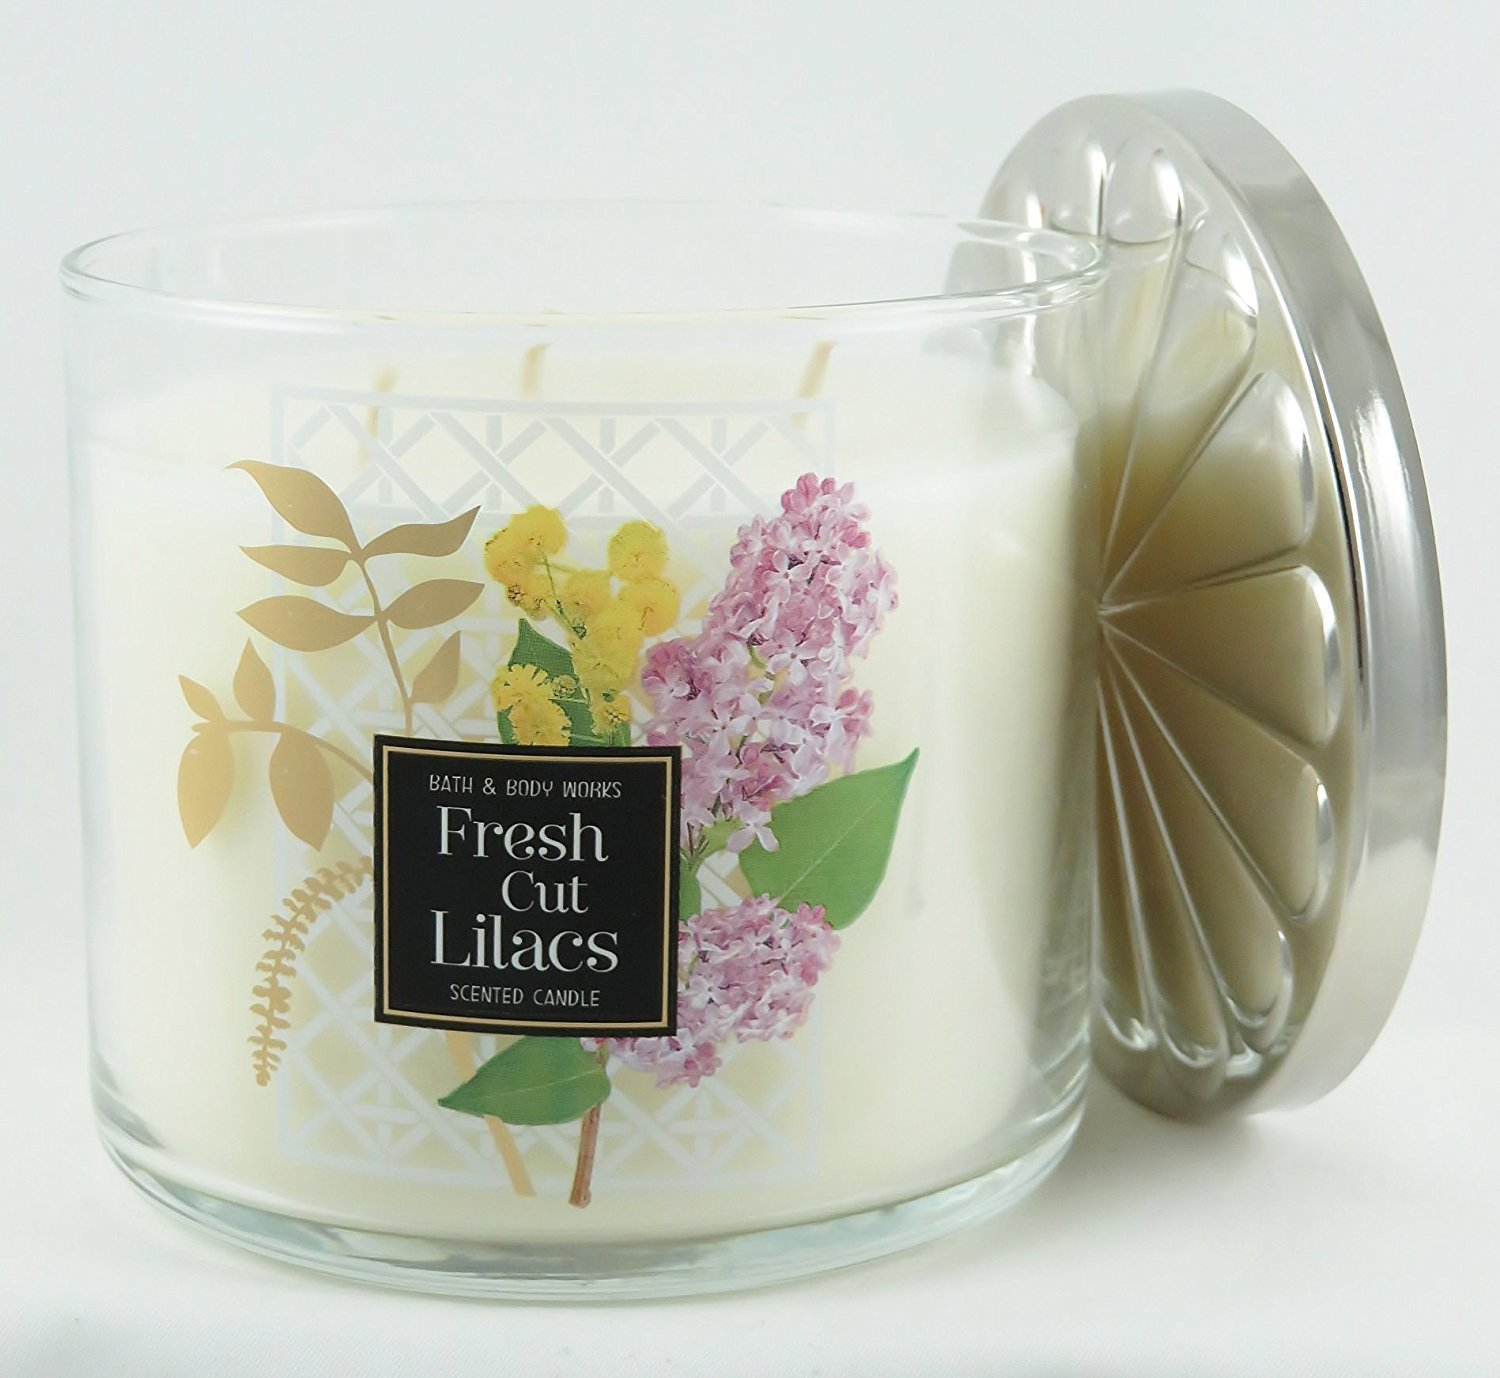 Bath & Body Works White Barn Scented 3-Wick Candle in Fresh Cut Lilacs (14.5oz) LEPAC2527